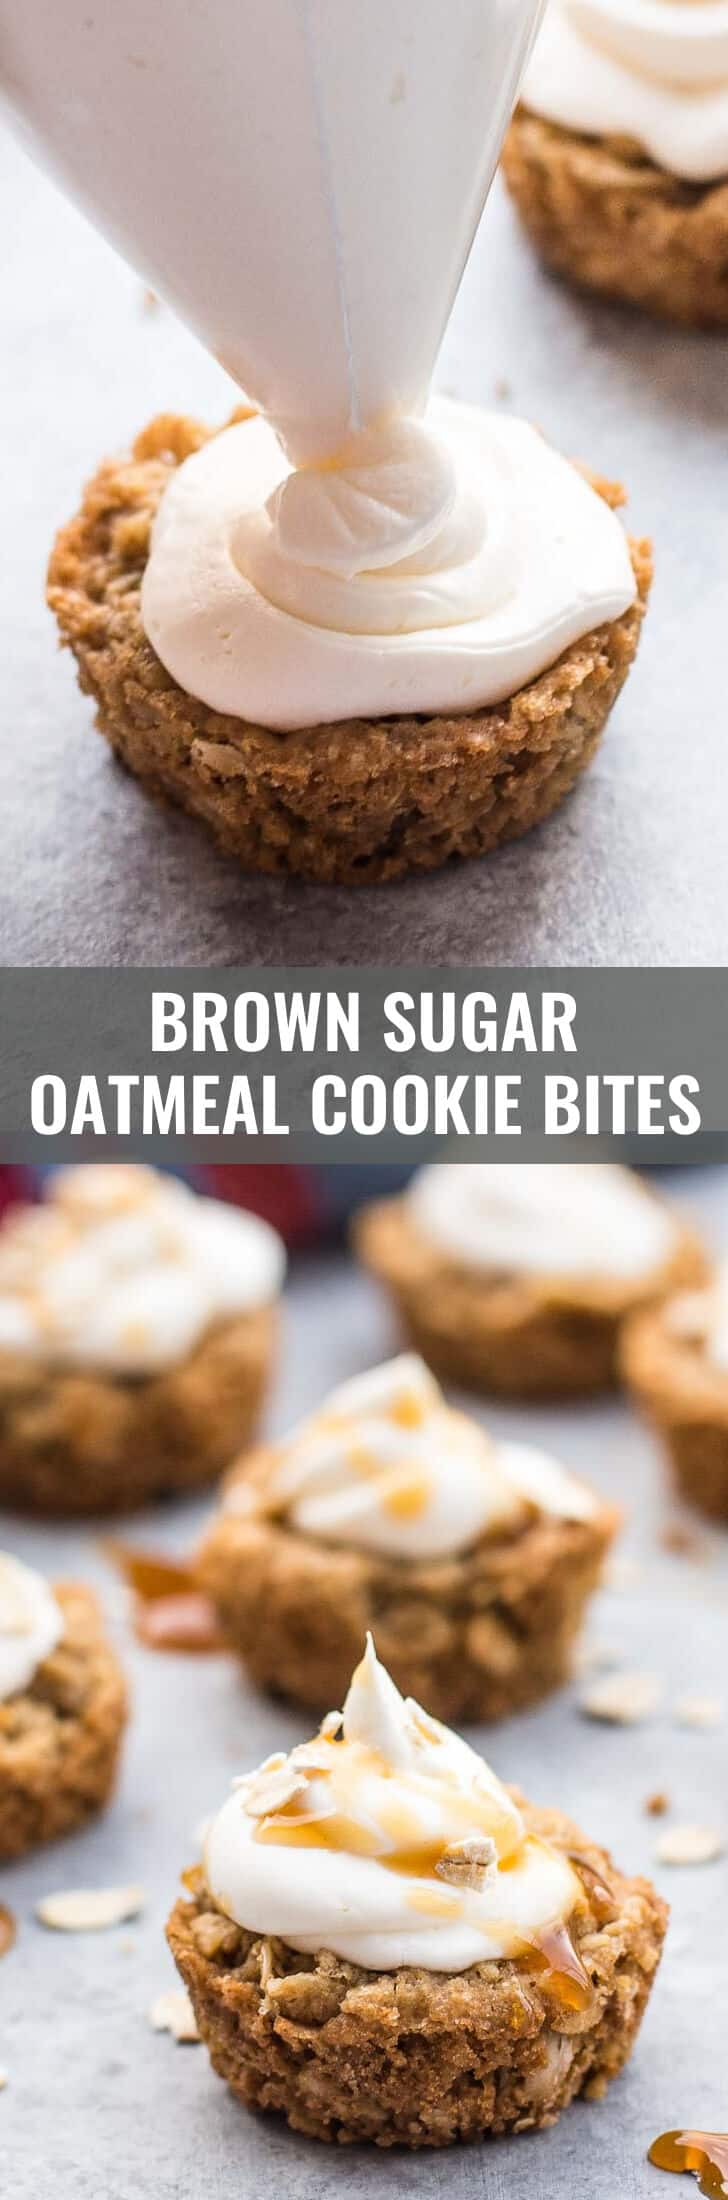 Brown sugar oatmeal cookie bites - These bite-sized oatmeal cookie cups are a fun twist on everything that is good about classic oatmeal cookie sandwiches. Made with brown sugar these treats are super tender and have a rich, caramel flavor.